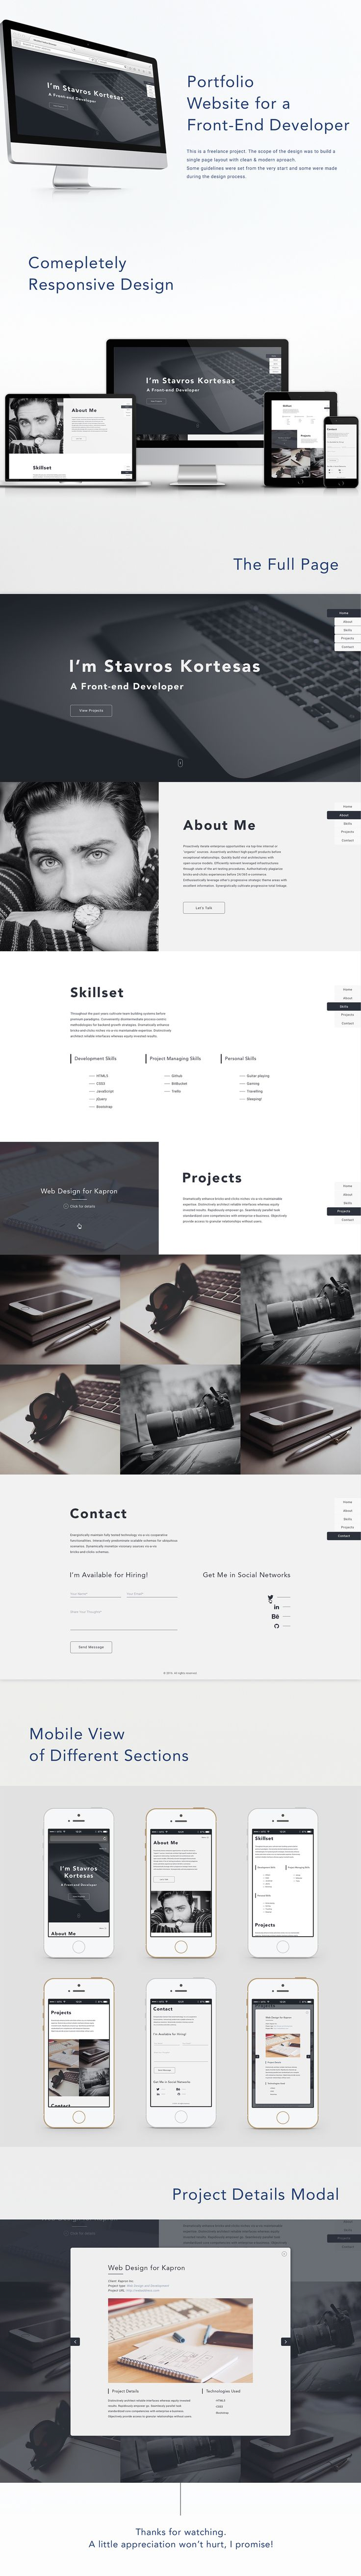 One-Page Portfolio Website for a Front-end Developer on Behance